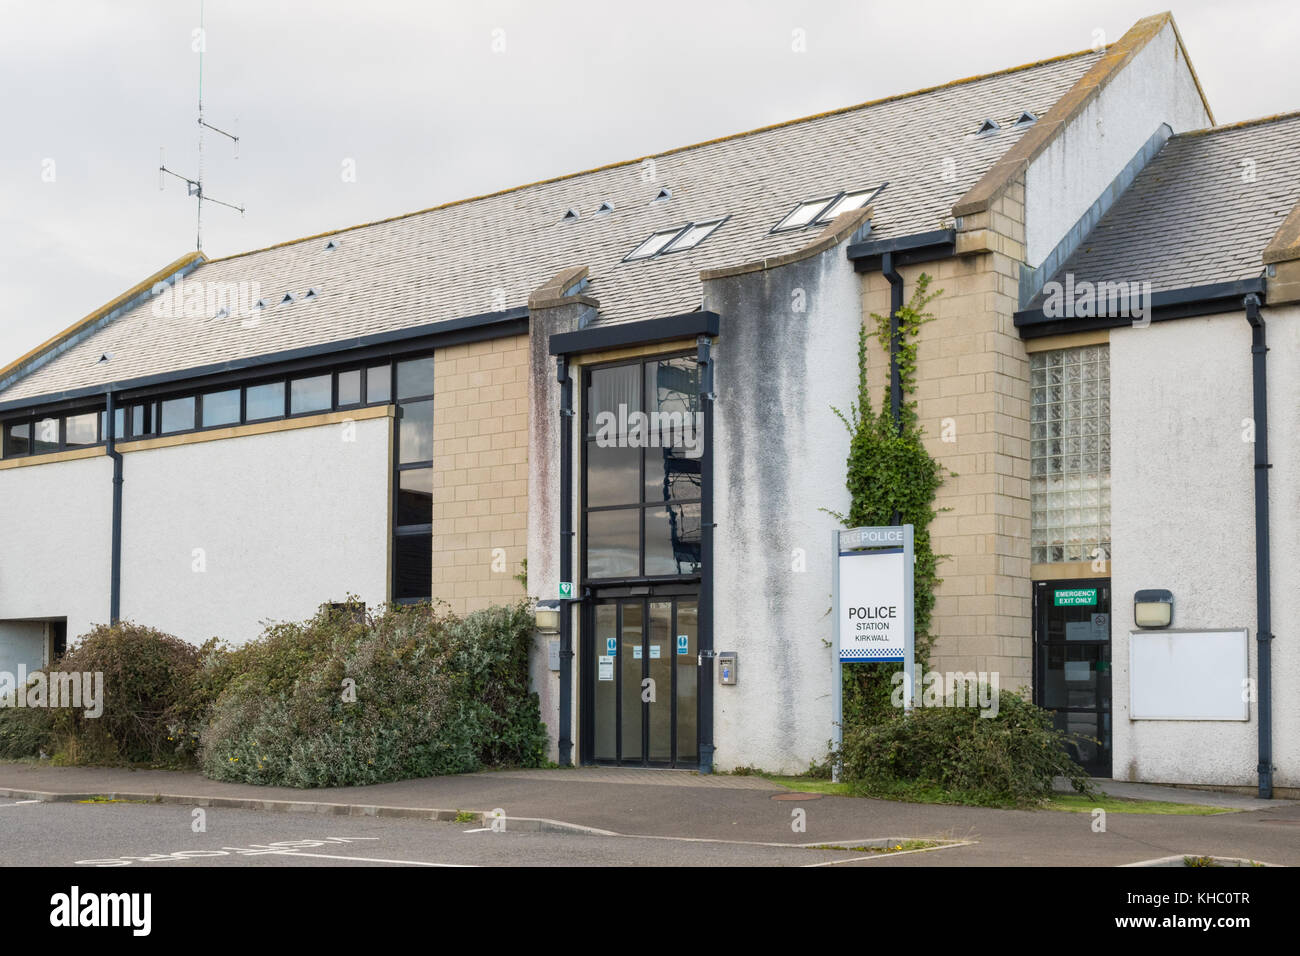 police station, Kirkwall, Orkney, Scotland, UK Stock Photo